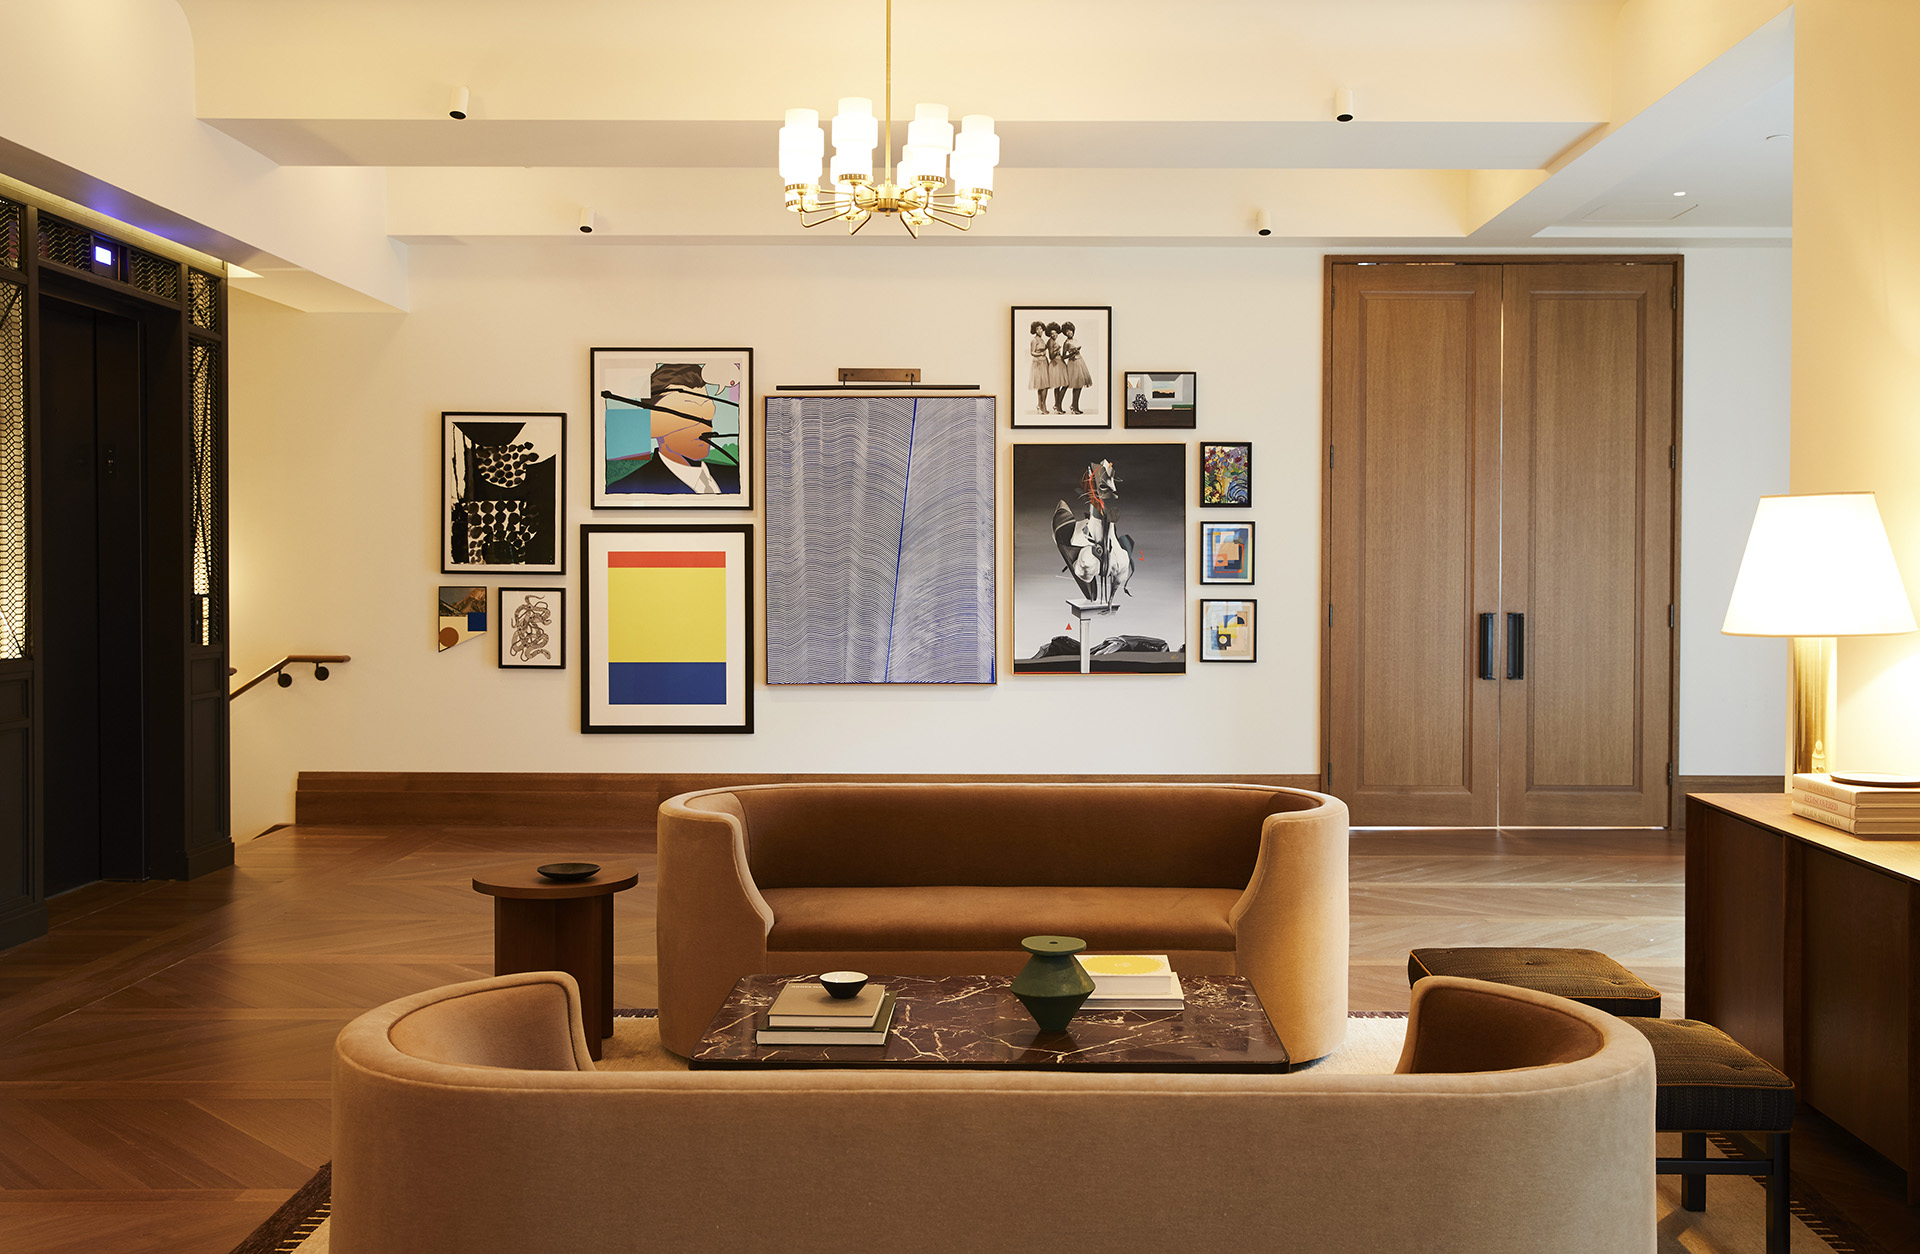 The salon is an extension of the brand with its all tan and leather interiors | Shinola Hotel| Gachot Studio | STIR